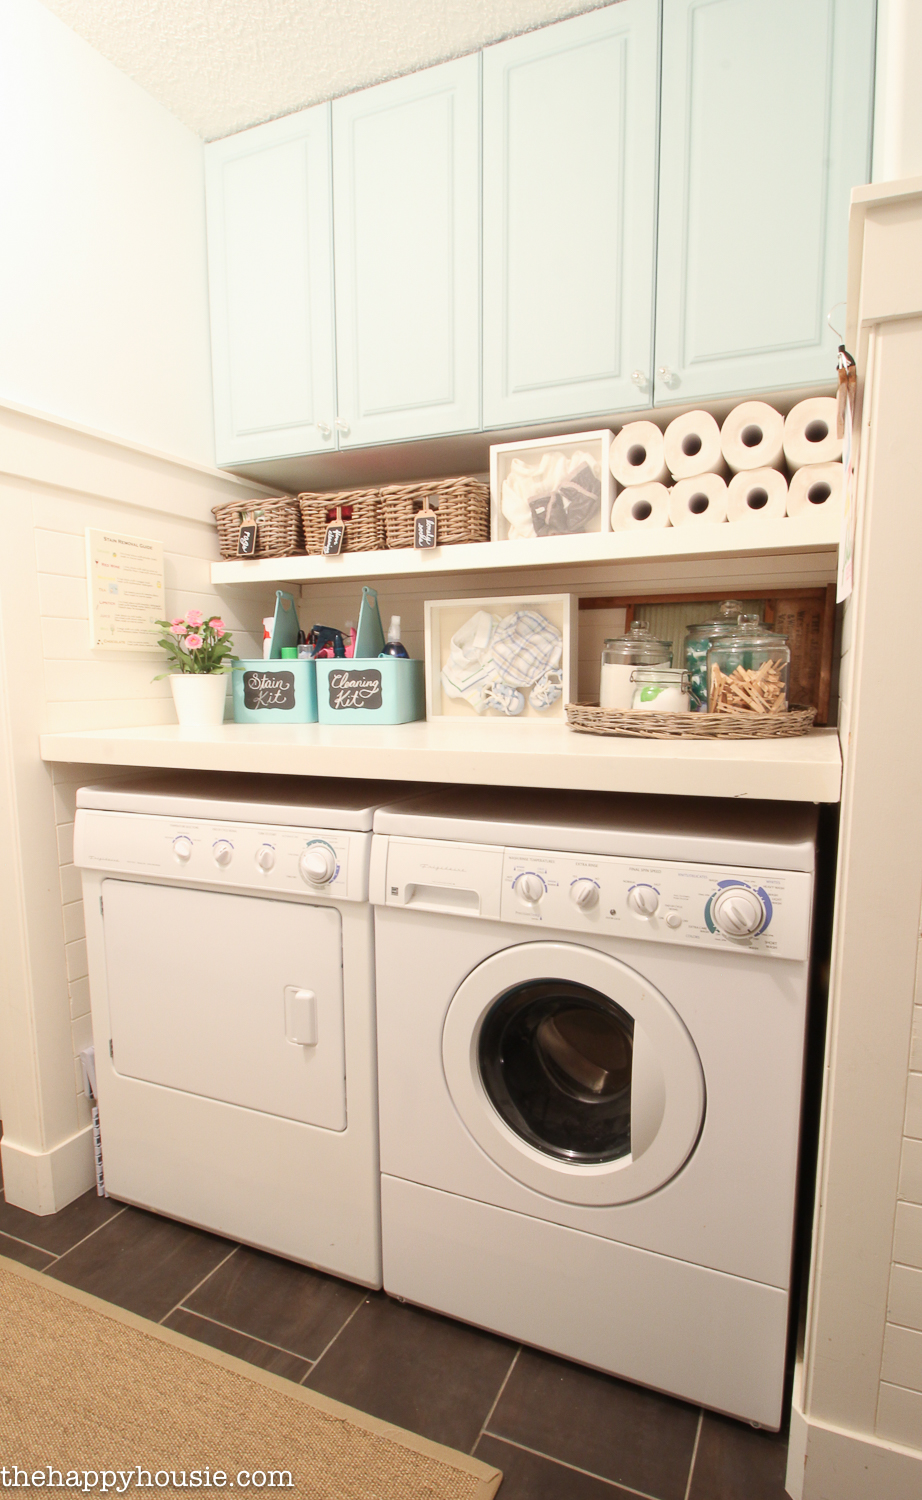 How to Completely Organize Your Laundry Room in Three Easy ... on Laundry Room Organization Ideas  id=32606